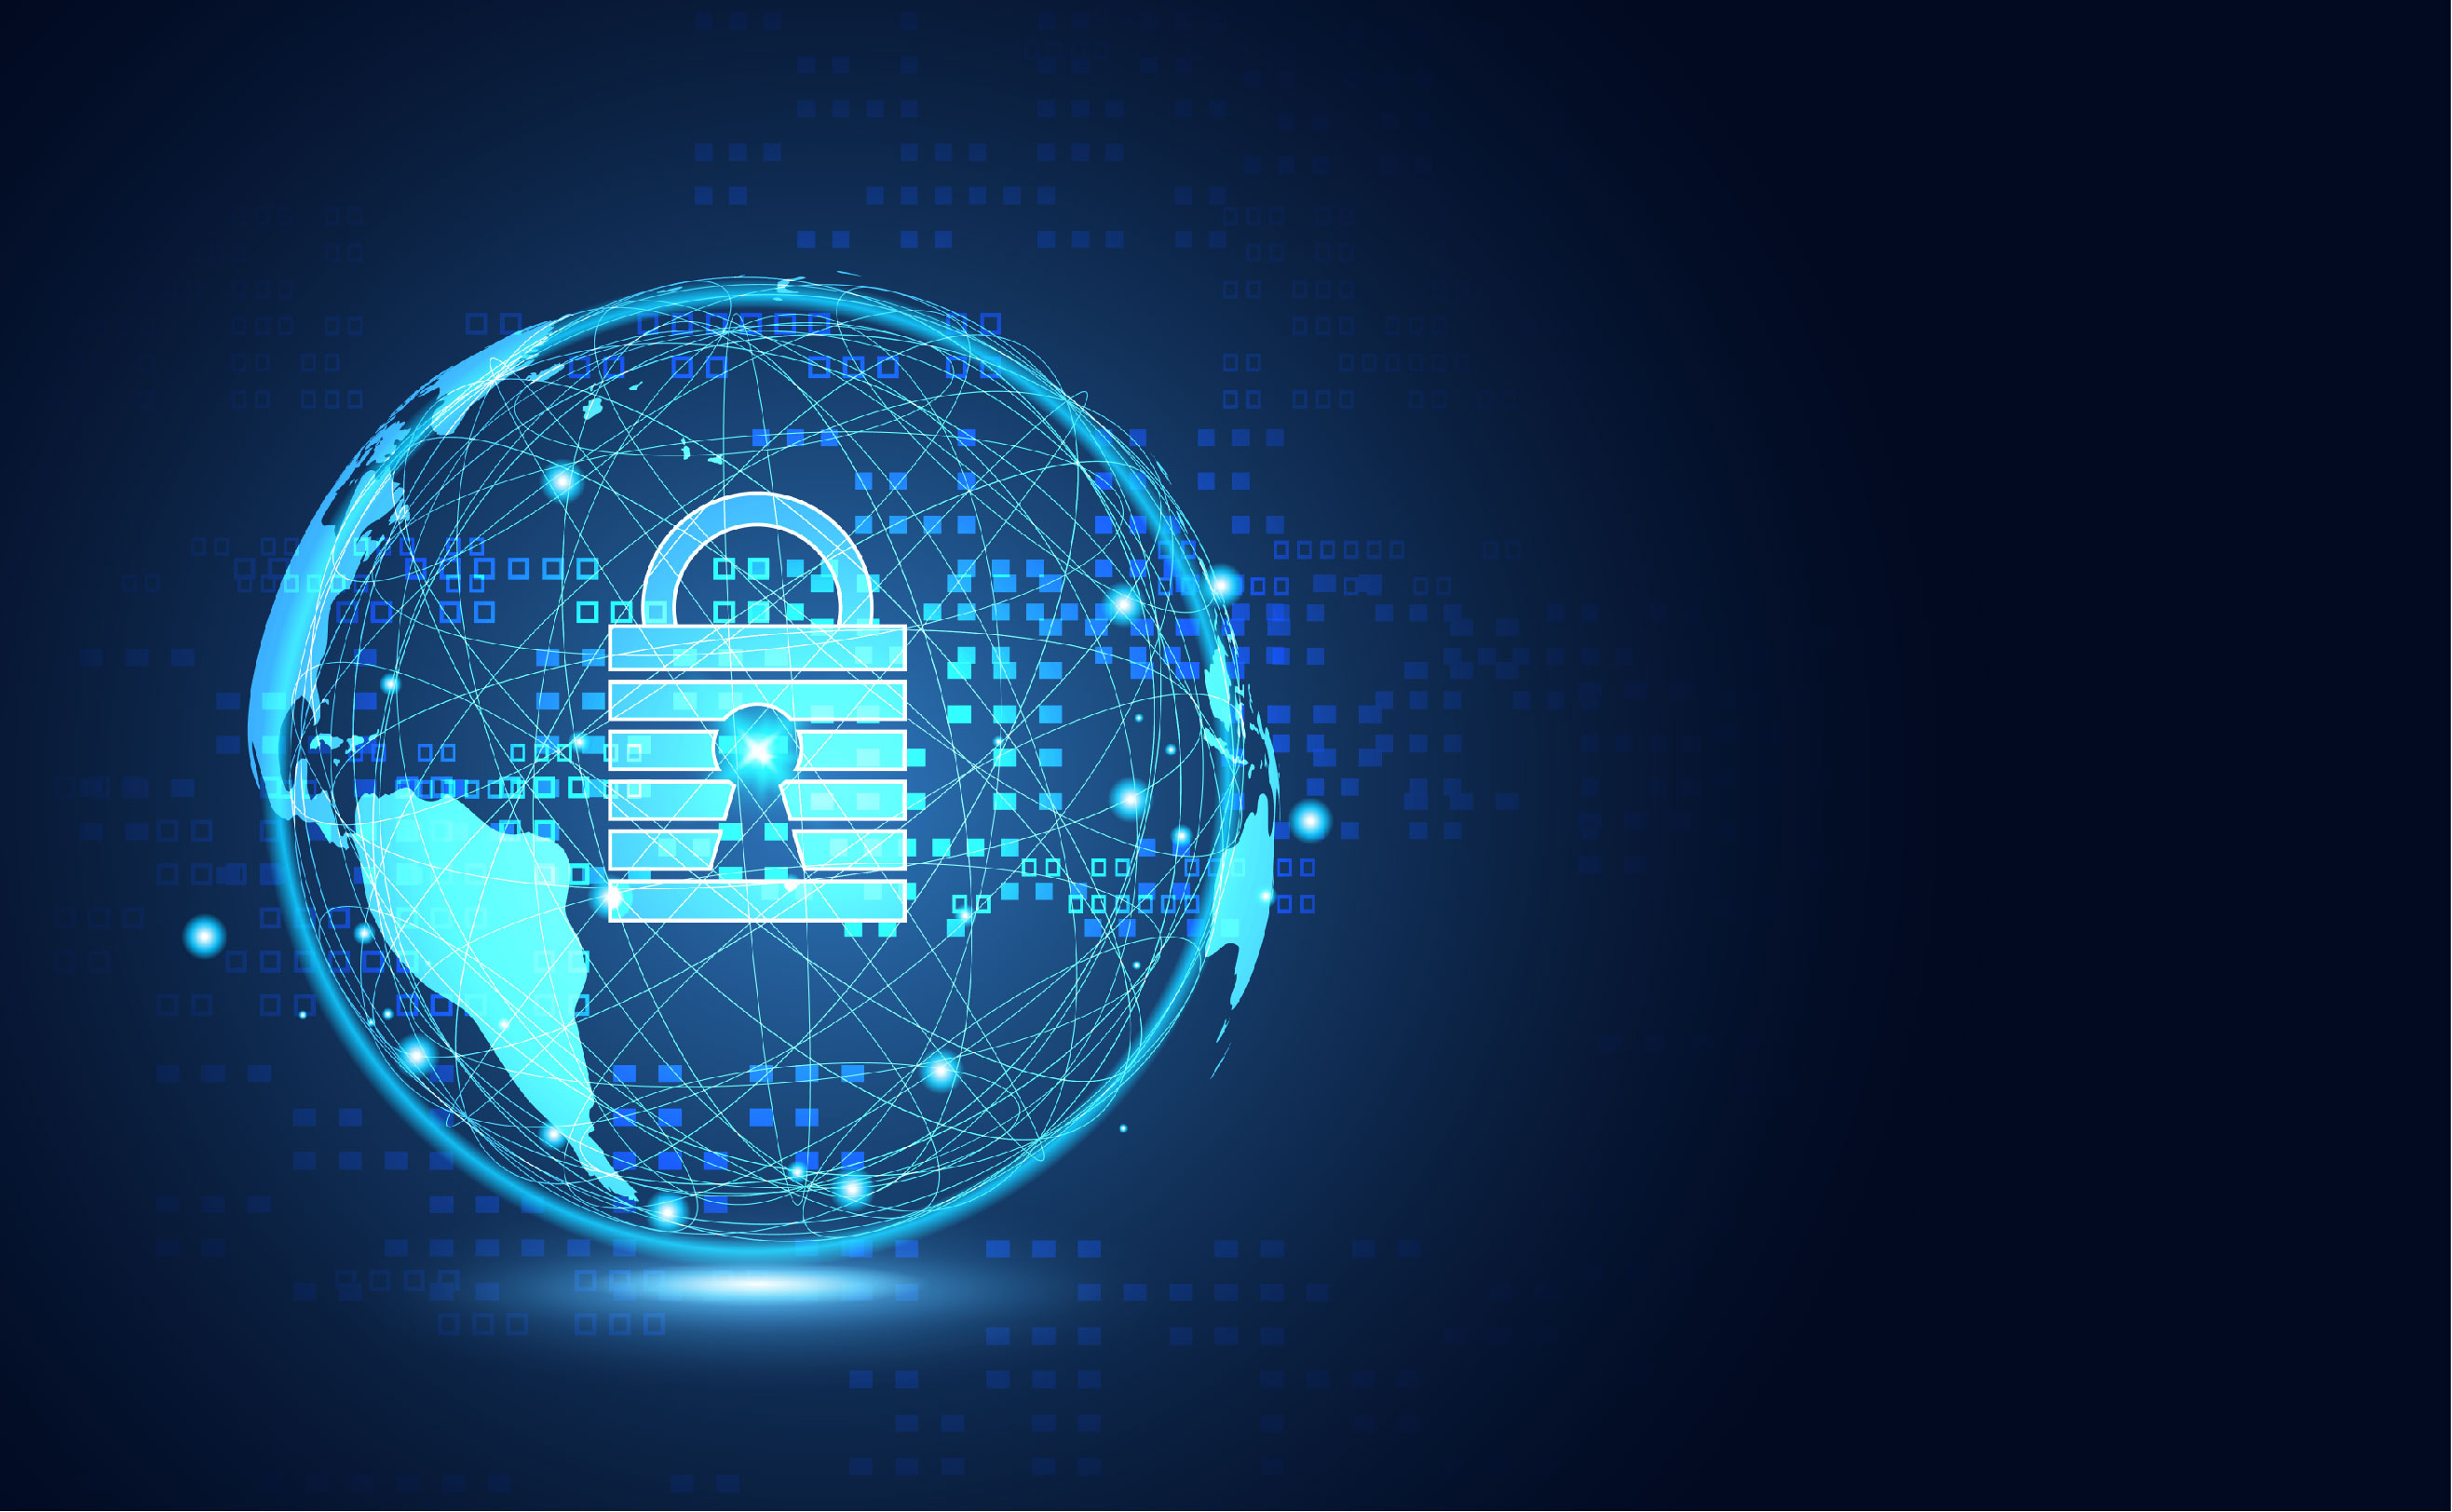 Mitigating the Cybersecurity Risks in Smart Manufacturing